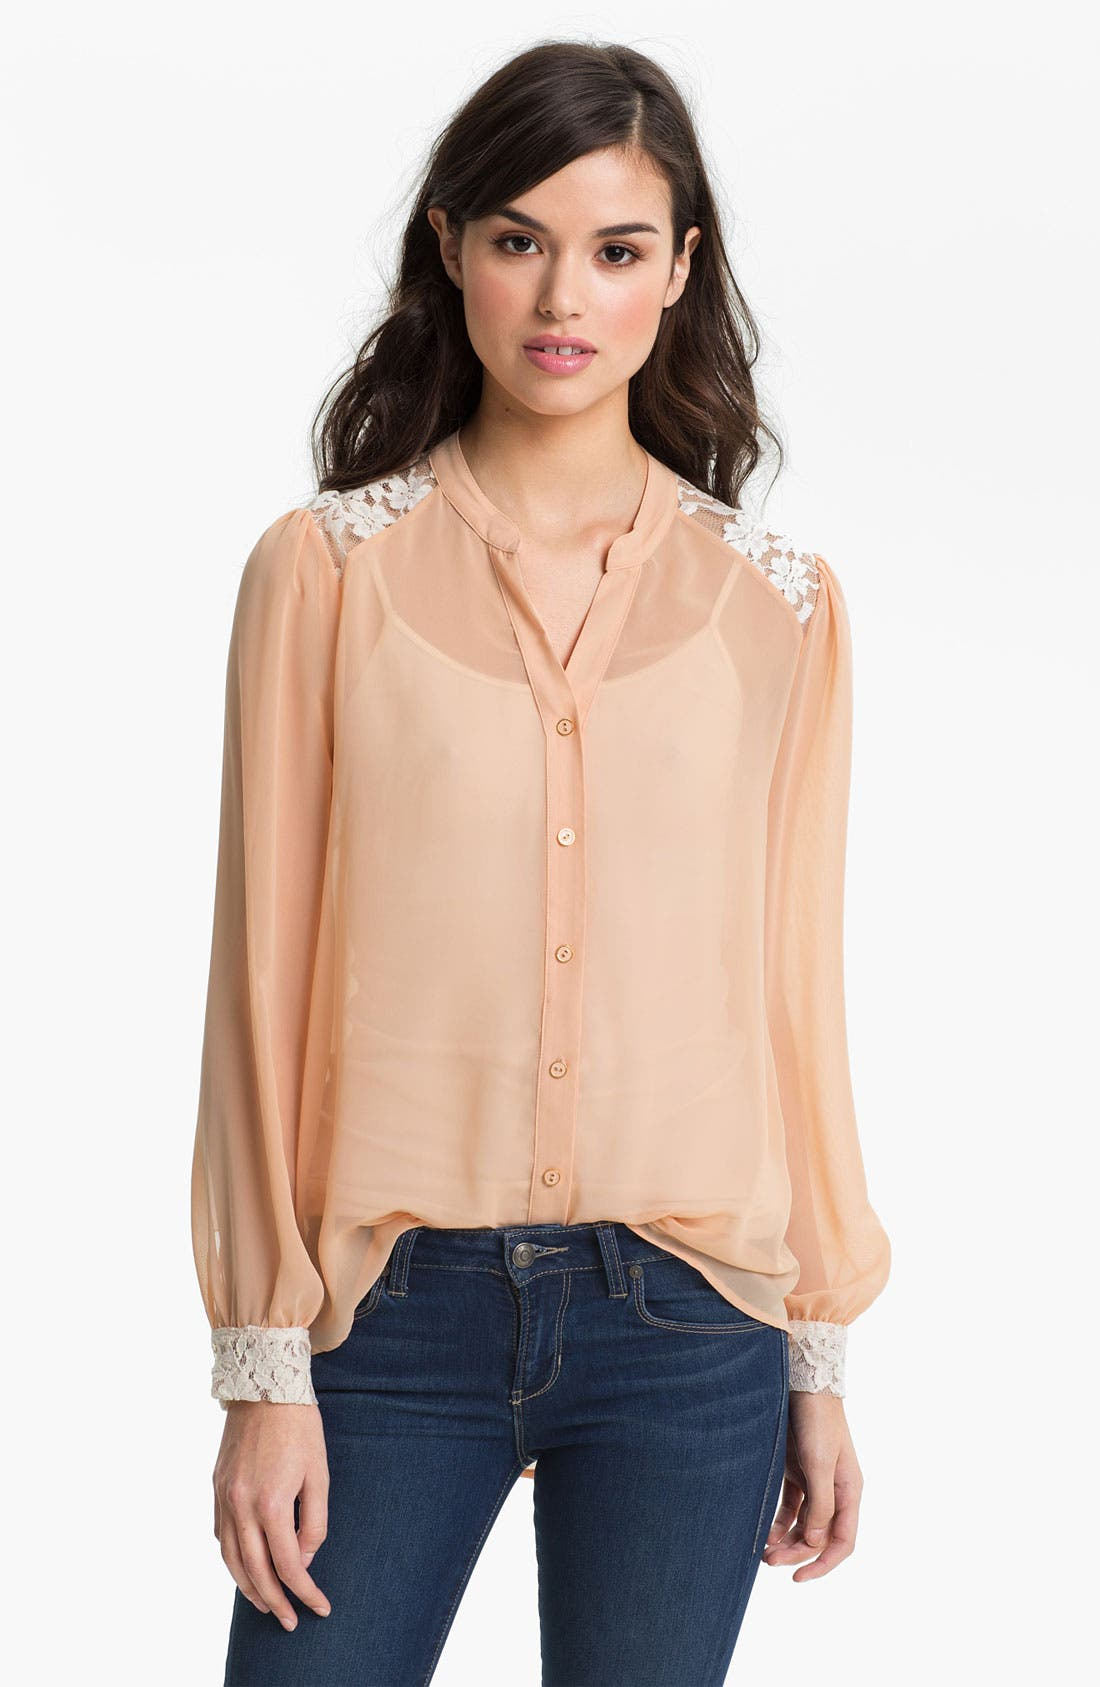 Alternate Image 1 Selected - Robin K Lace Trim Chiffon Shirt (Juniors)